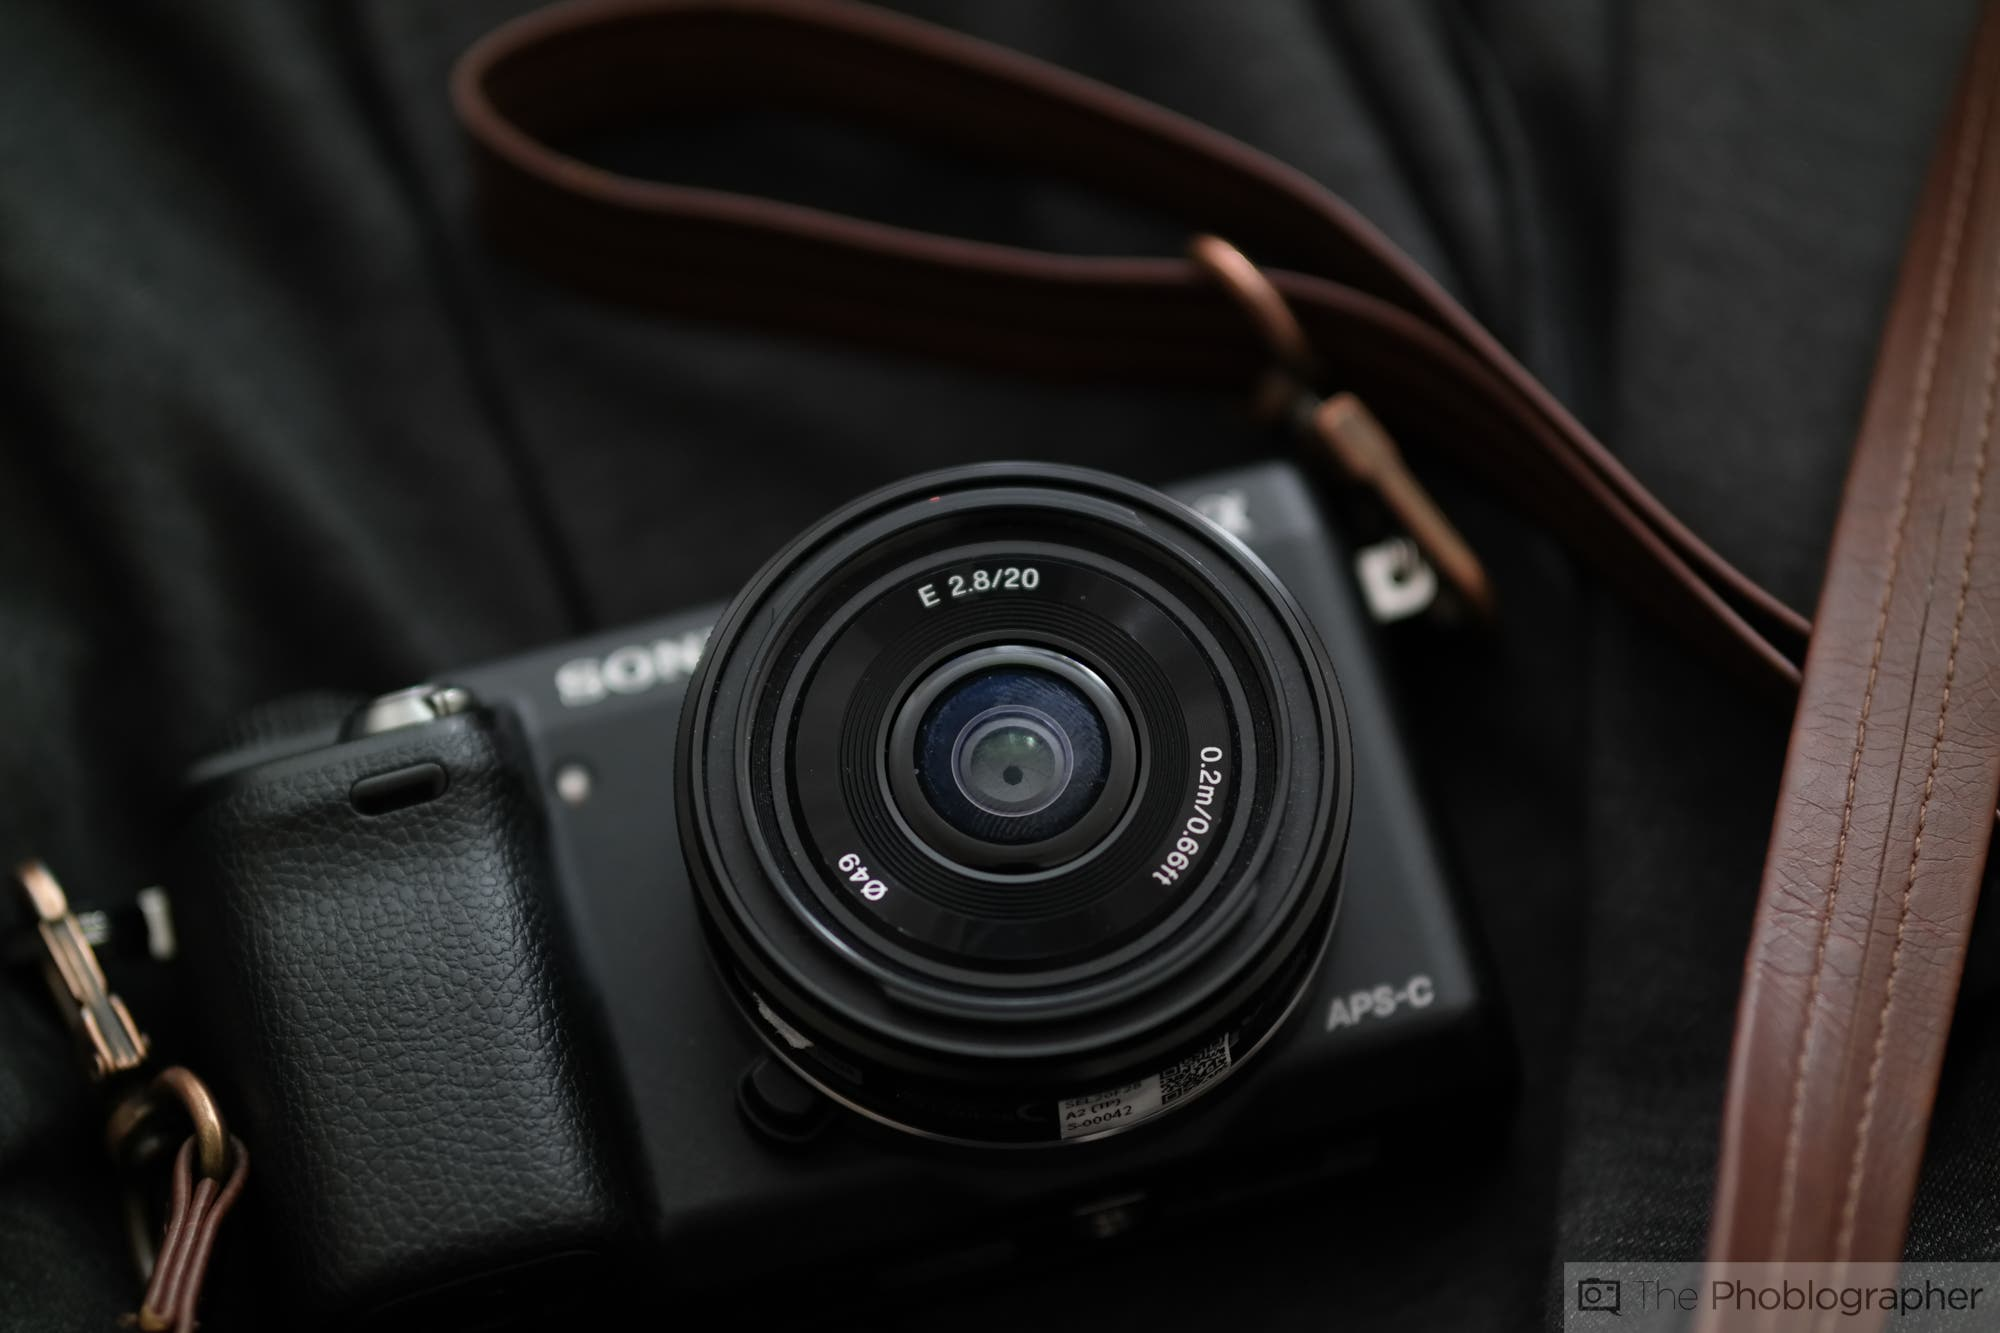 sony 20mm. sony\u0027s 20mm f2.8 is a very plain jane and perhaps the company\u0027s most minimalist offering. we start at front of lens where element doesn\u0027t sony y